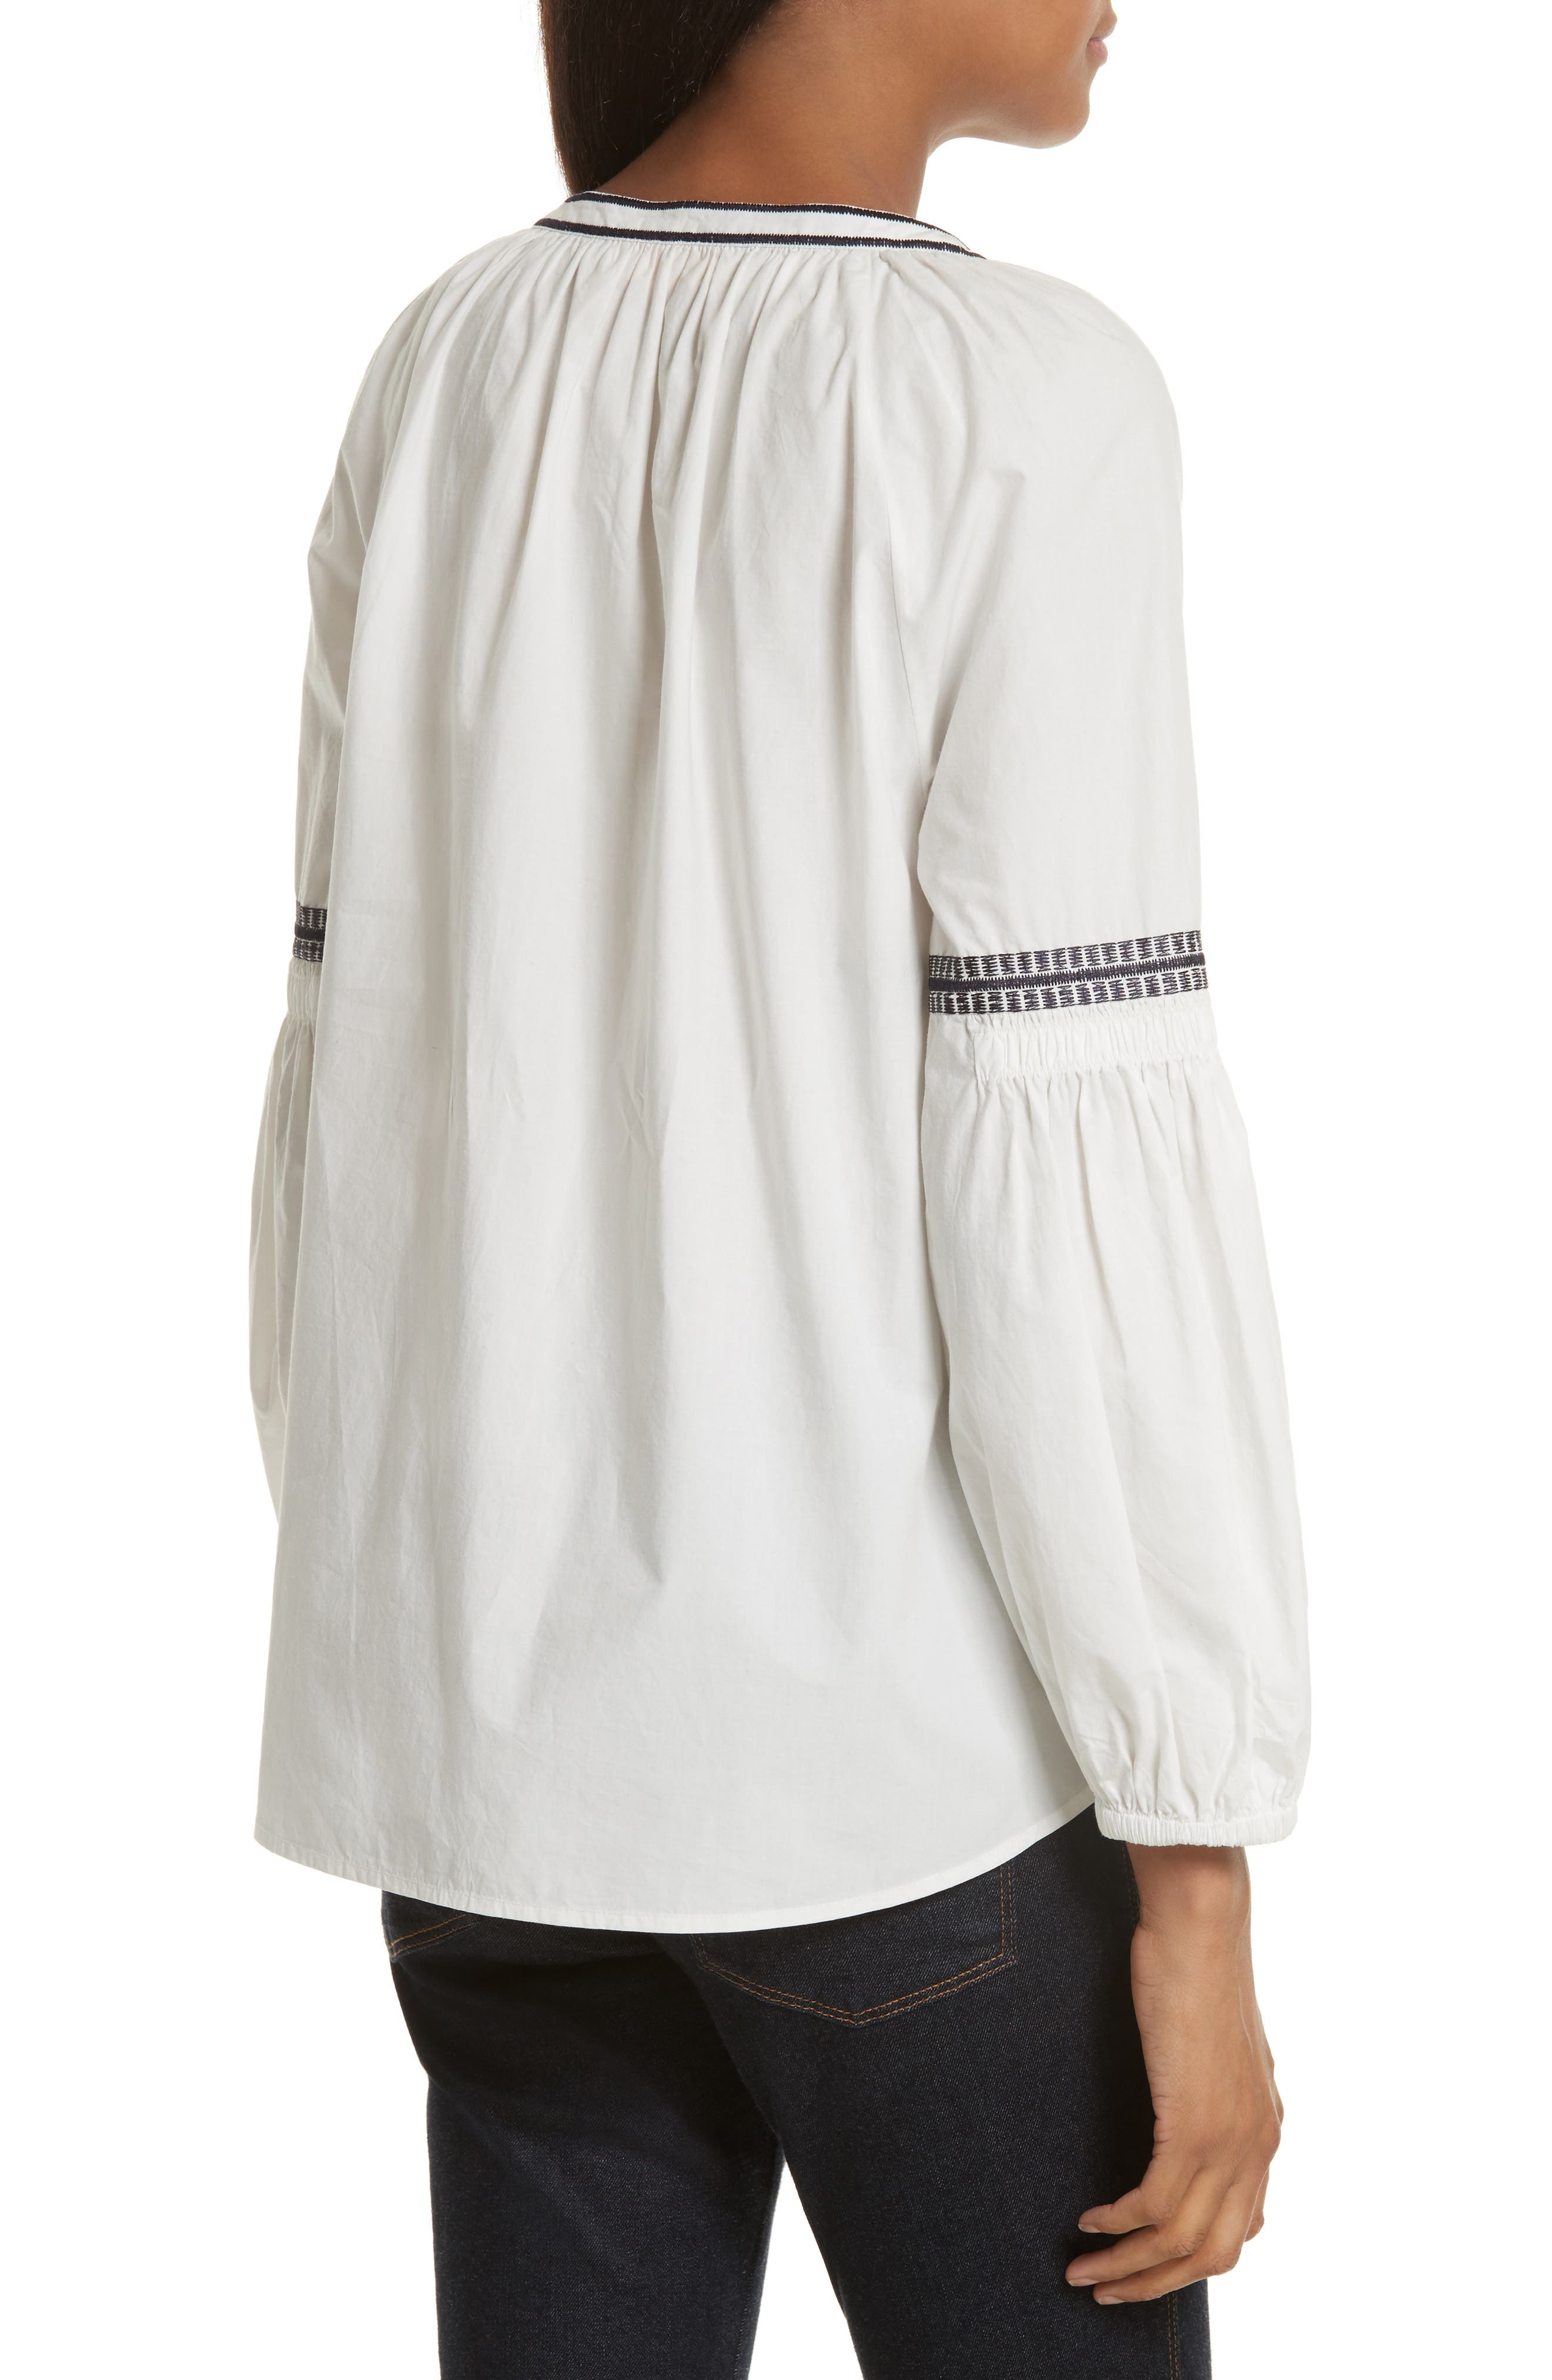 Aubrey Embroidered Peasant Top,                             Alternate thumbnail 2, color,                             904